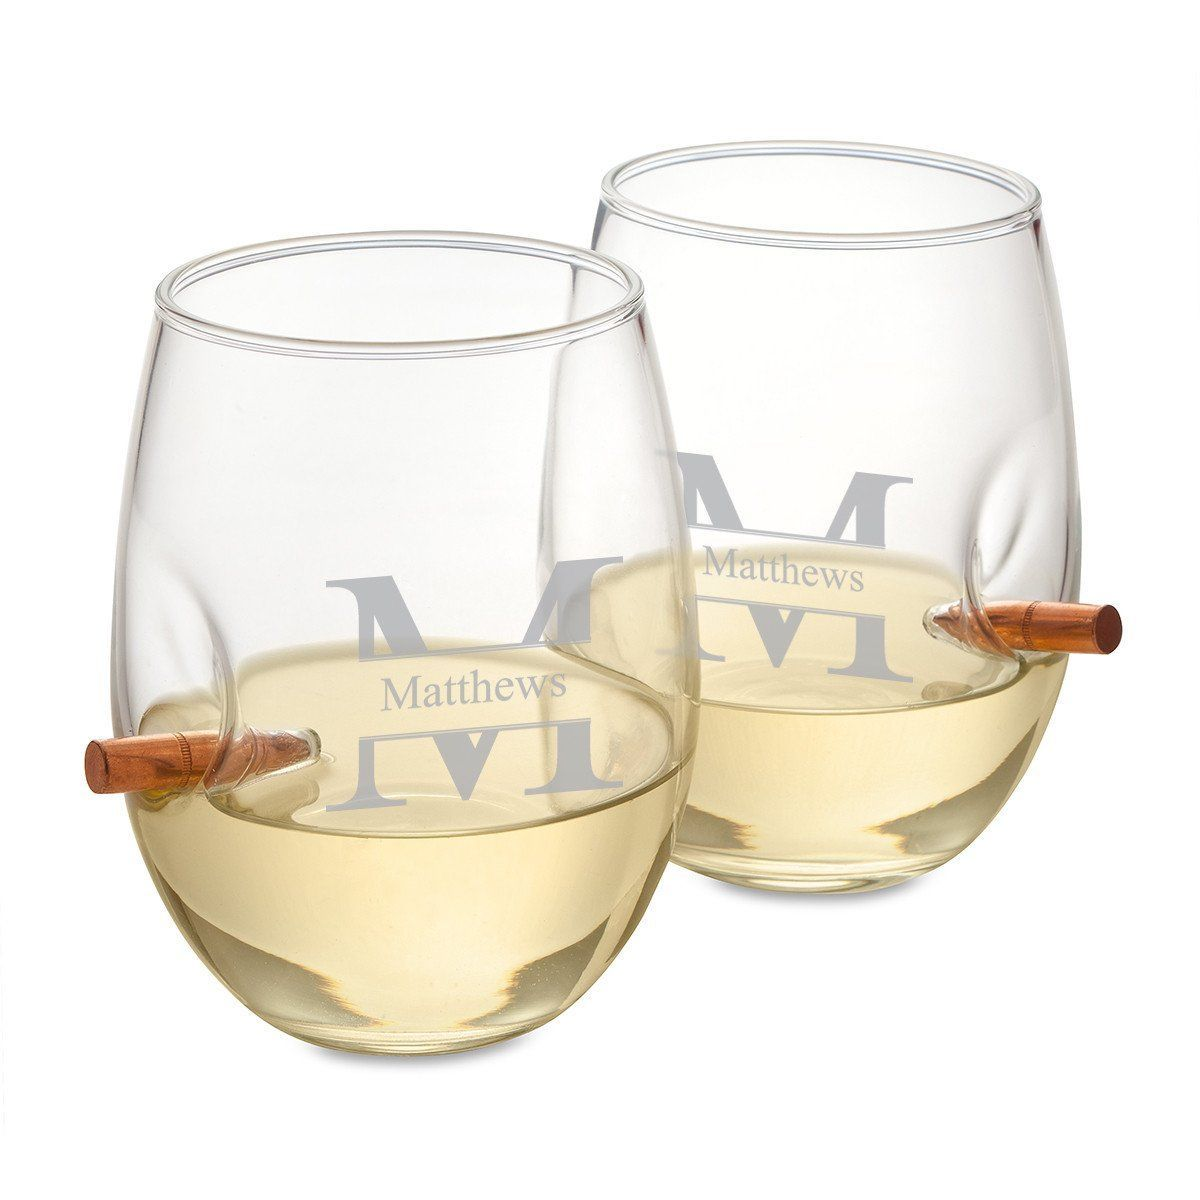 Personalized Bullet Wine Glasses - Set of 2